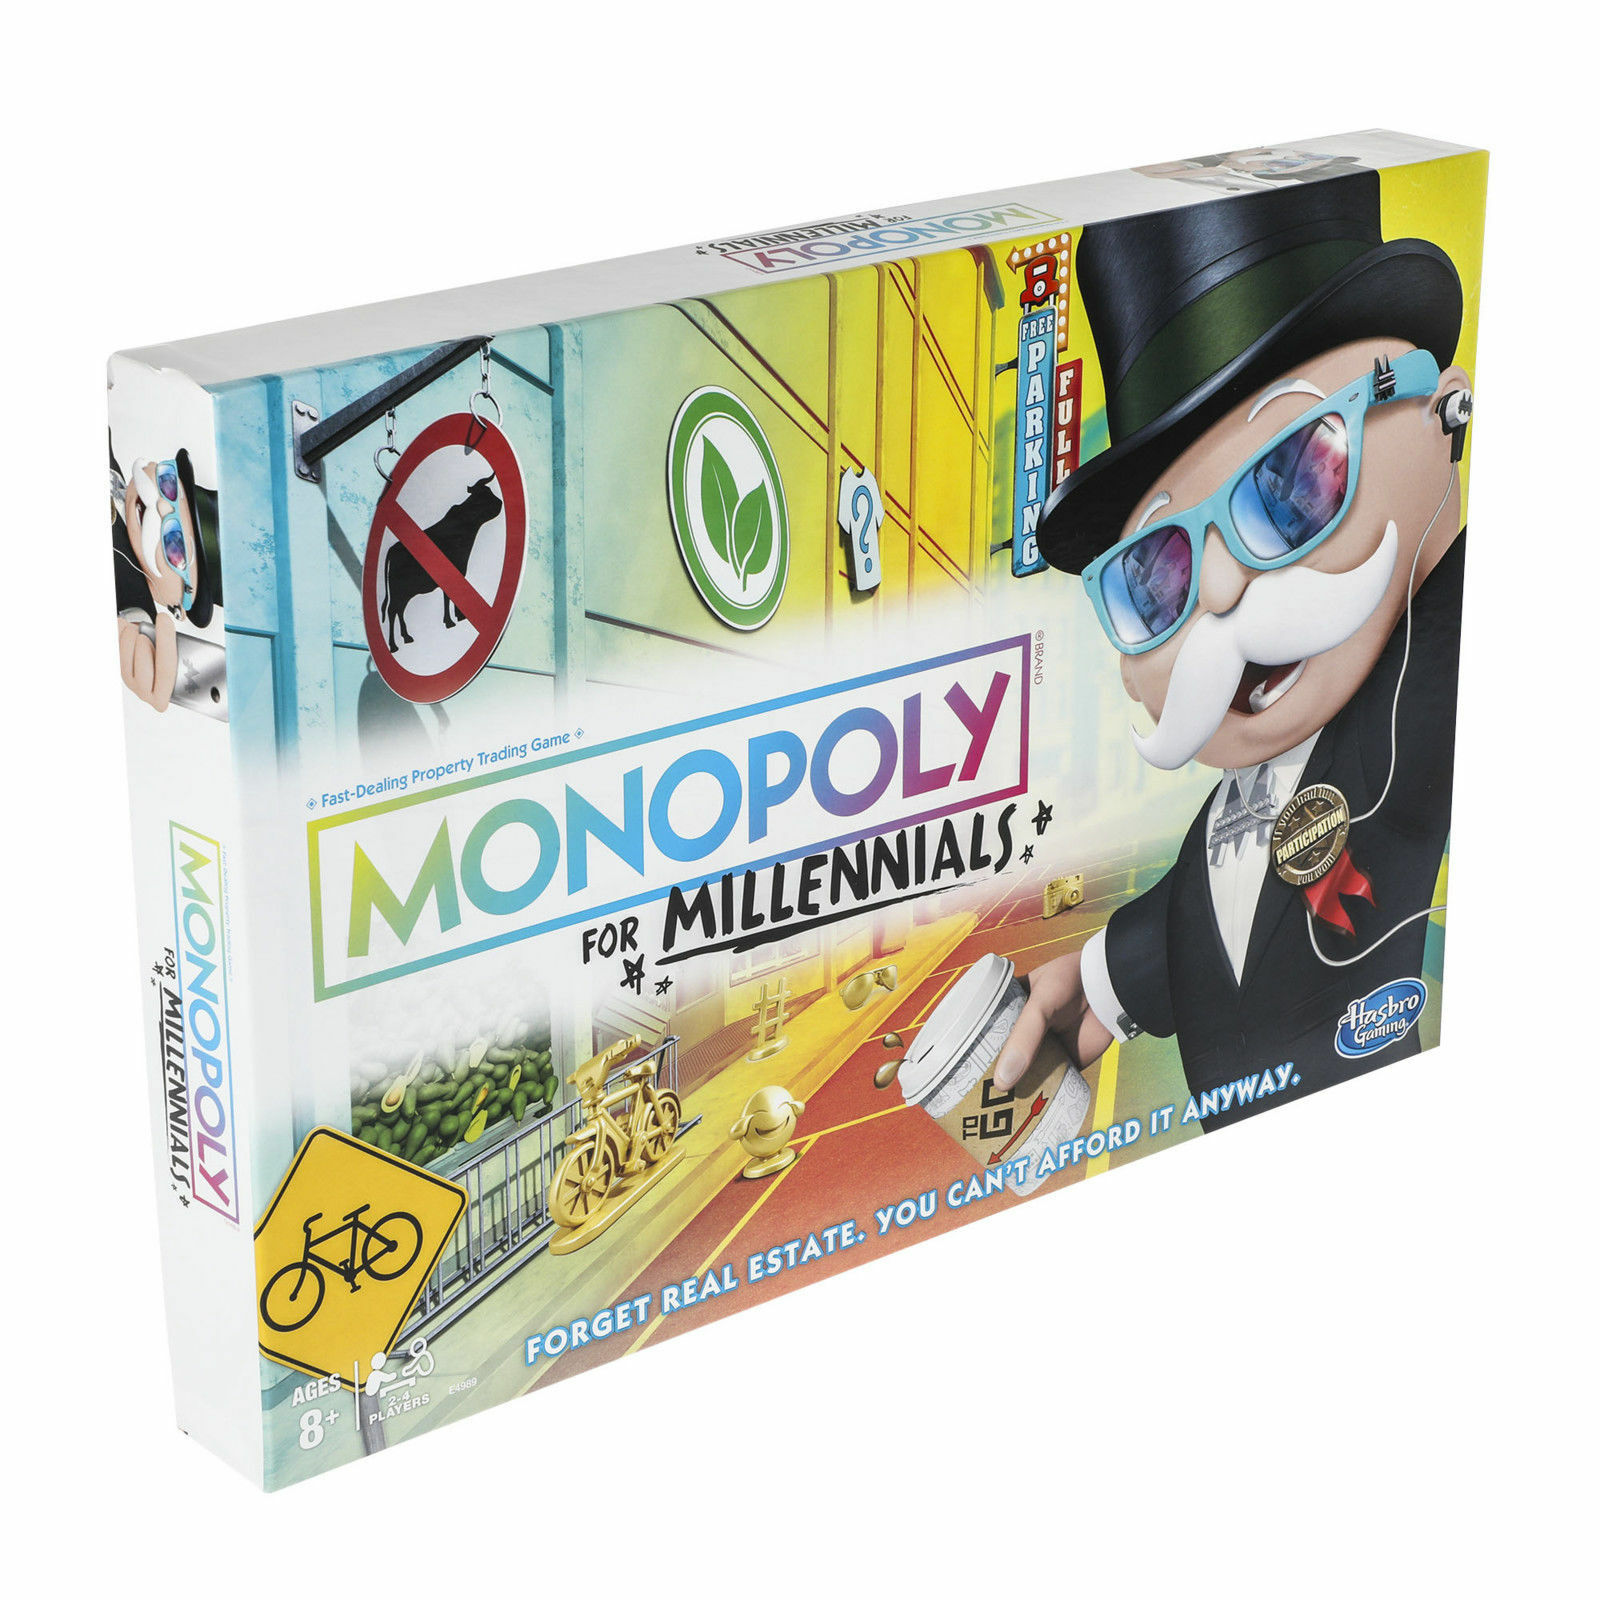 MONOPOLY FOR MILLENNIALS MILLENNIALS MILLENNIALS MILLENIALS MILENNIALS BOARD GAME Ages 8+ e8f096